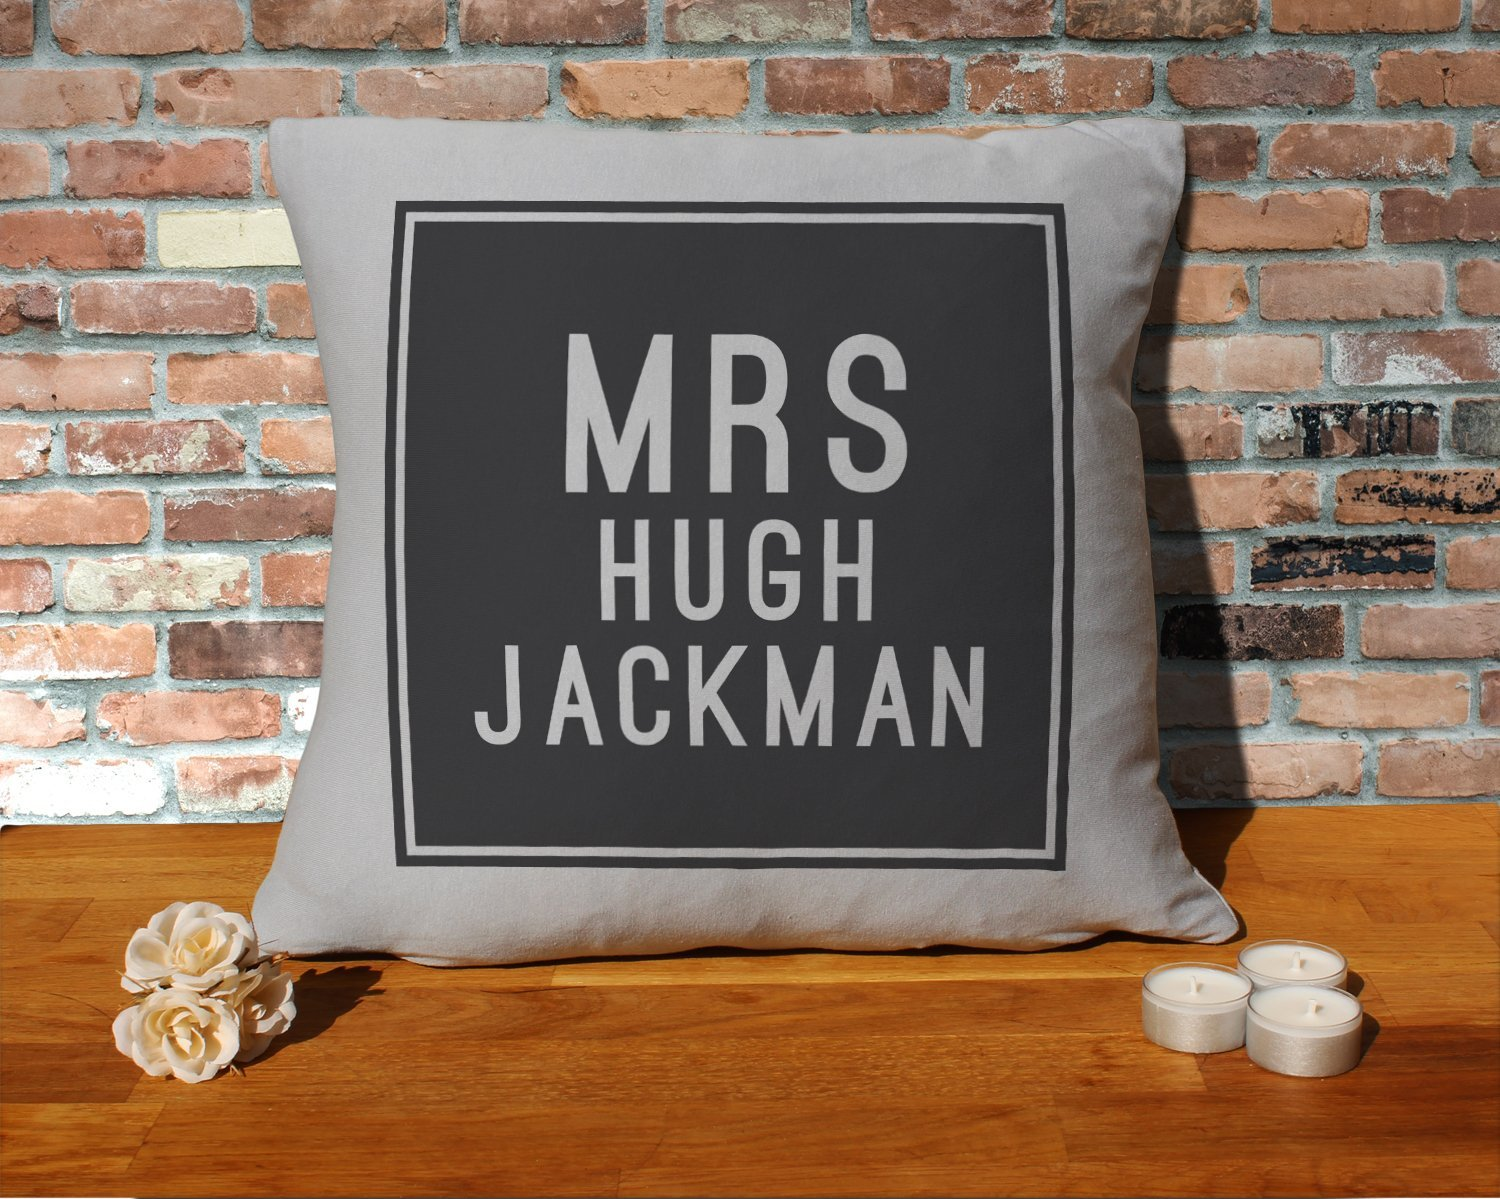 Hugh Jackman Cushion Pillow - Silver Grey - 100% Cotton - Available with or without filling pad - 40x40cm (Cover and filling pad) The Stocking Fillers